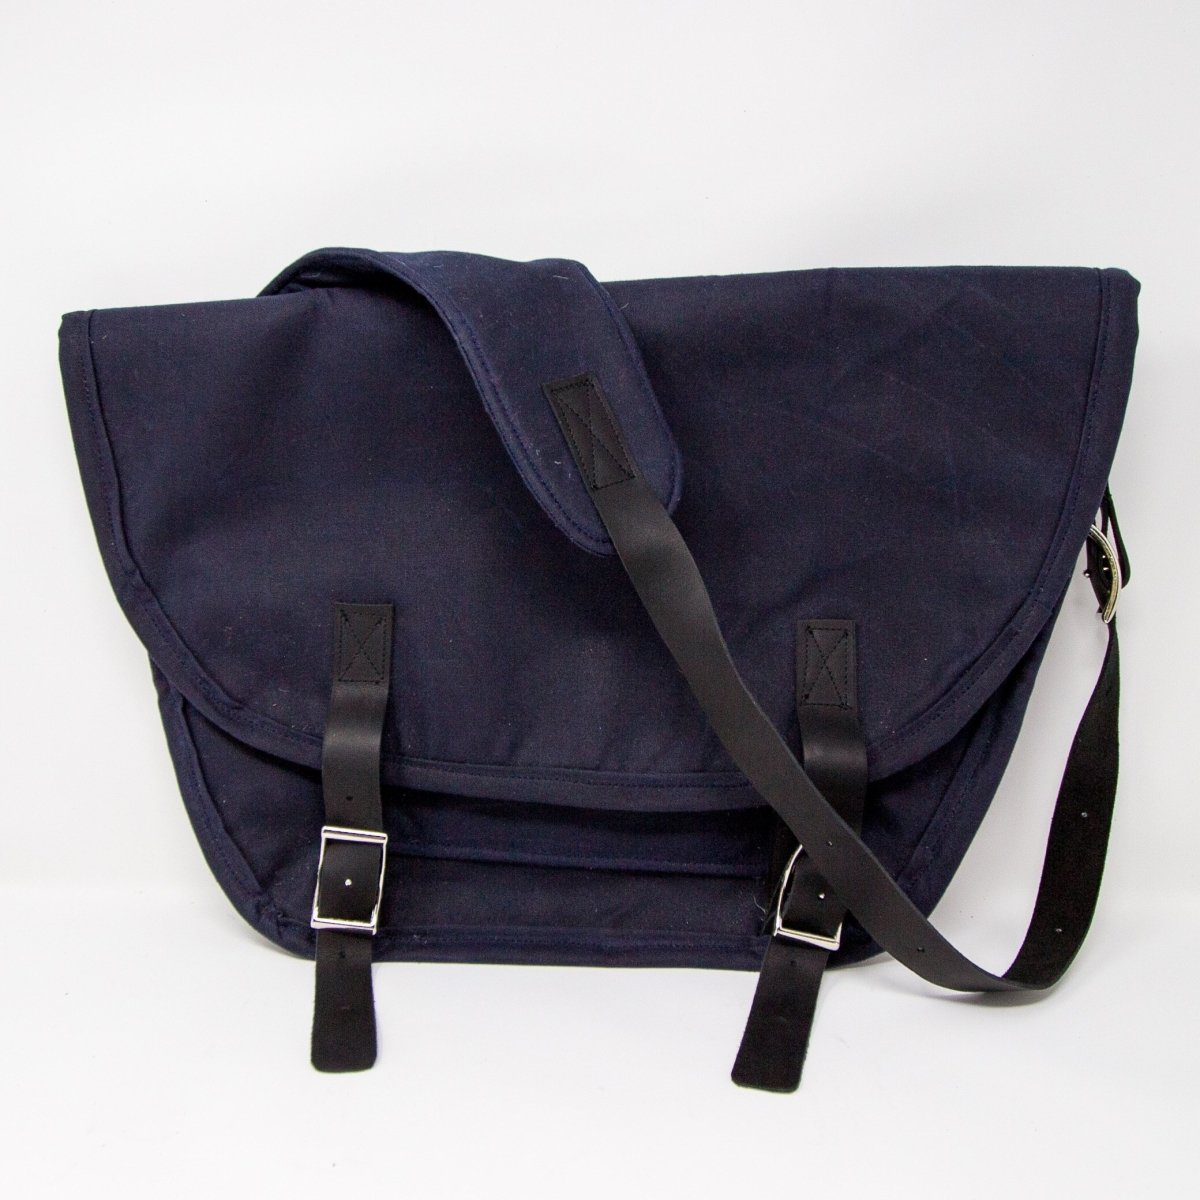 Waxed Canvas Commuter Bag - Wag Theory